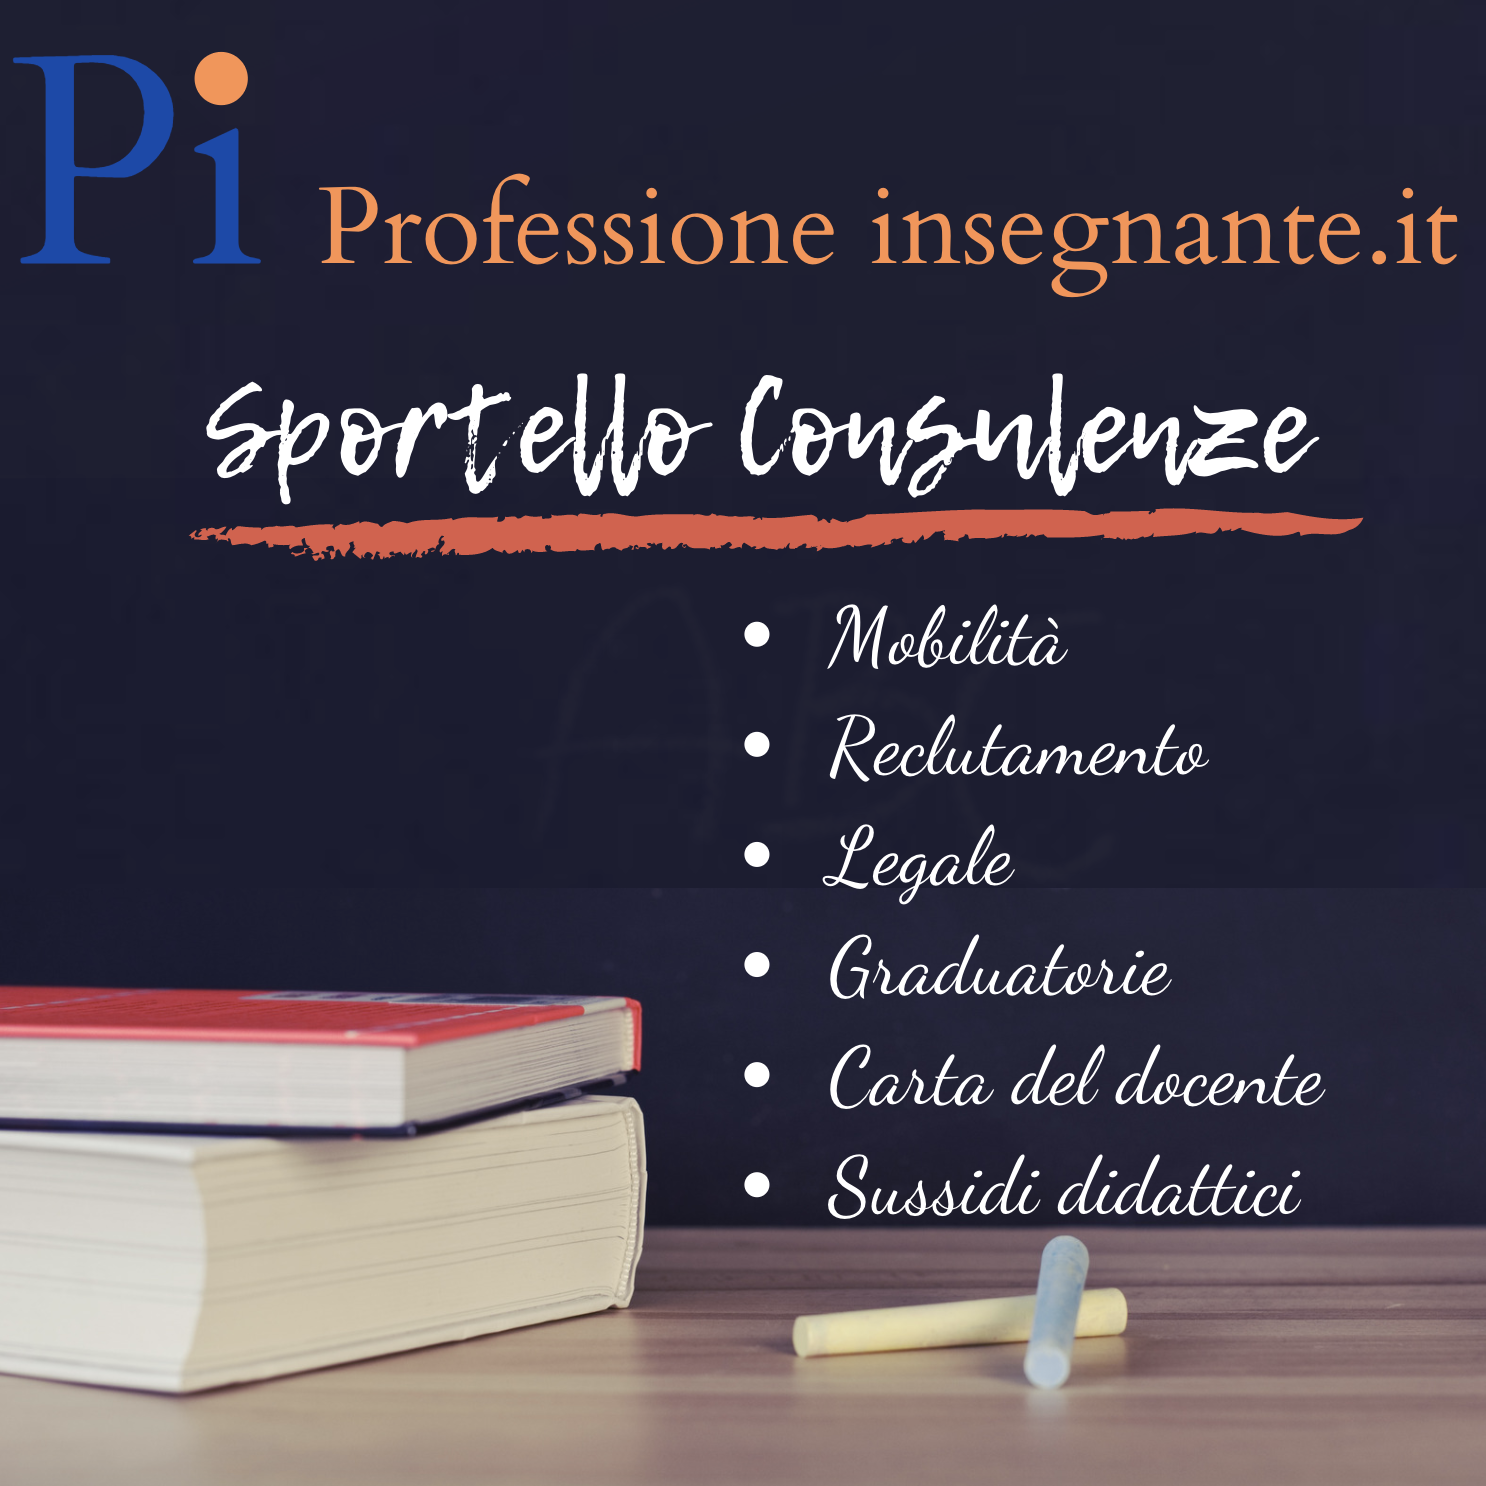 http://www.professioneinsegnante.it/wp-content/uploads/2021/02/Schermata-2021-02-14-alle-17.32.56.png